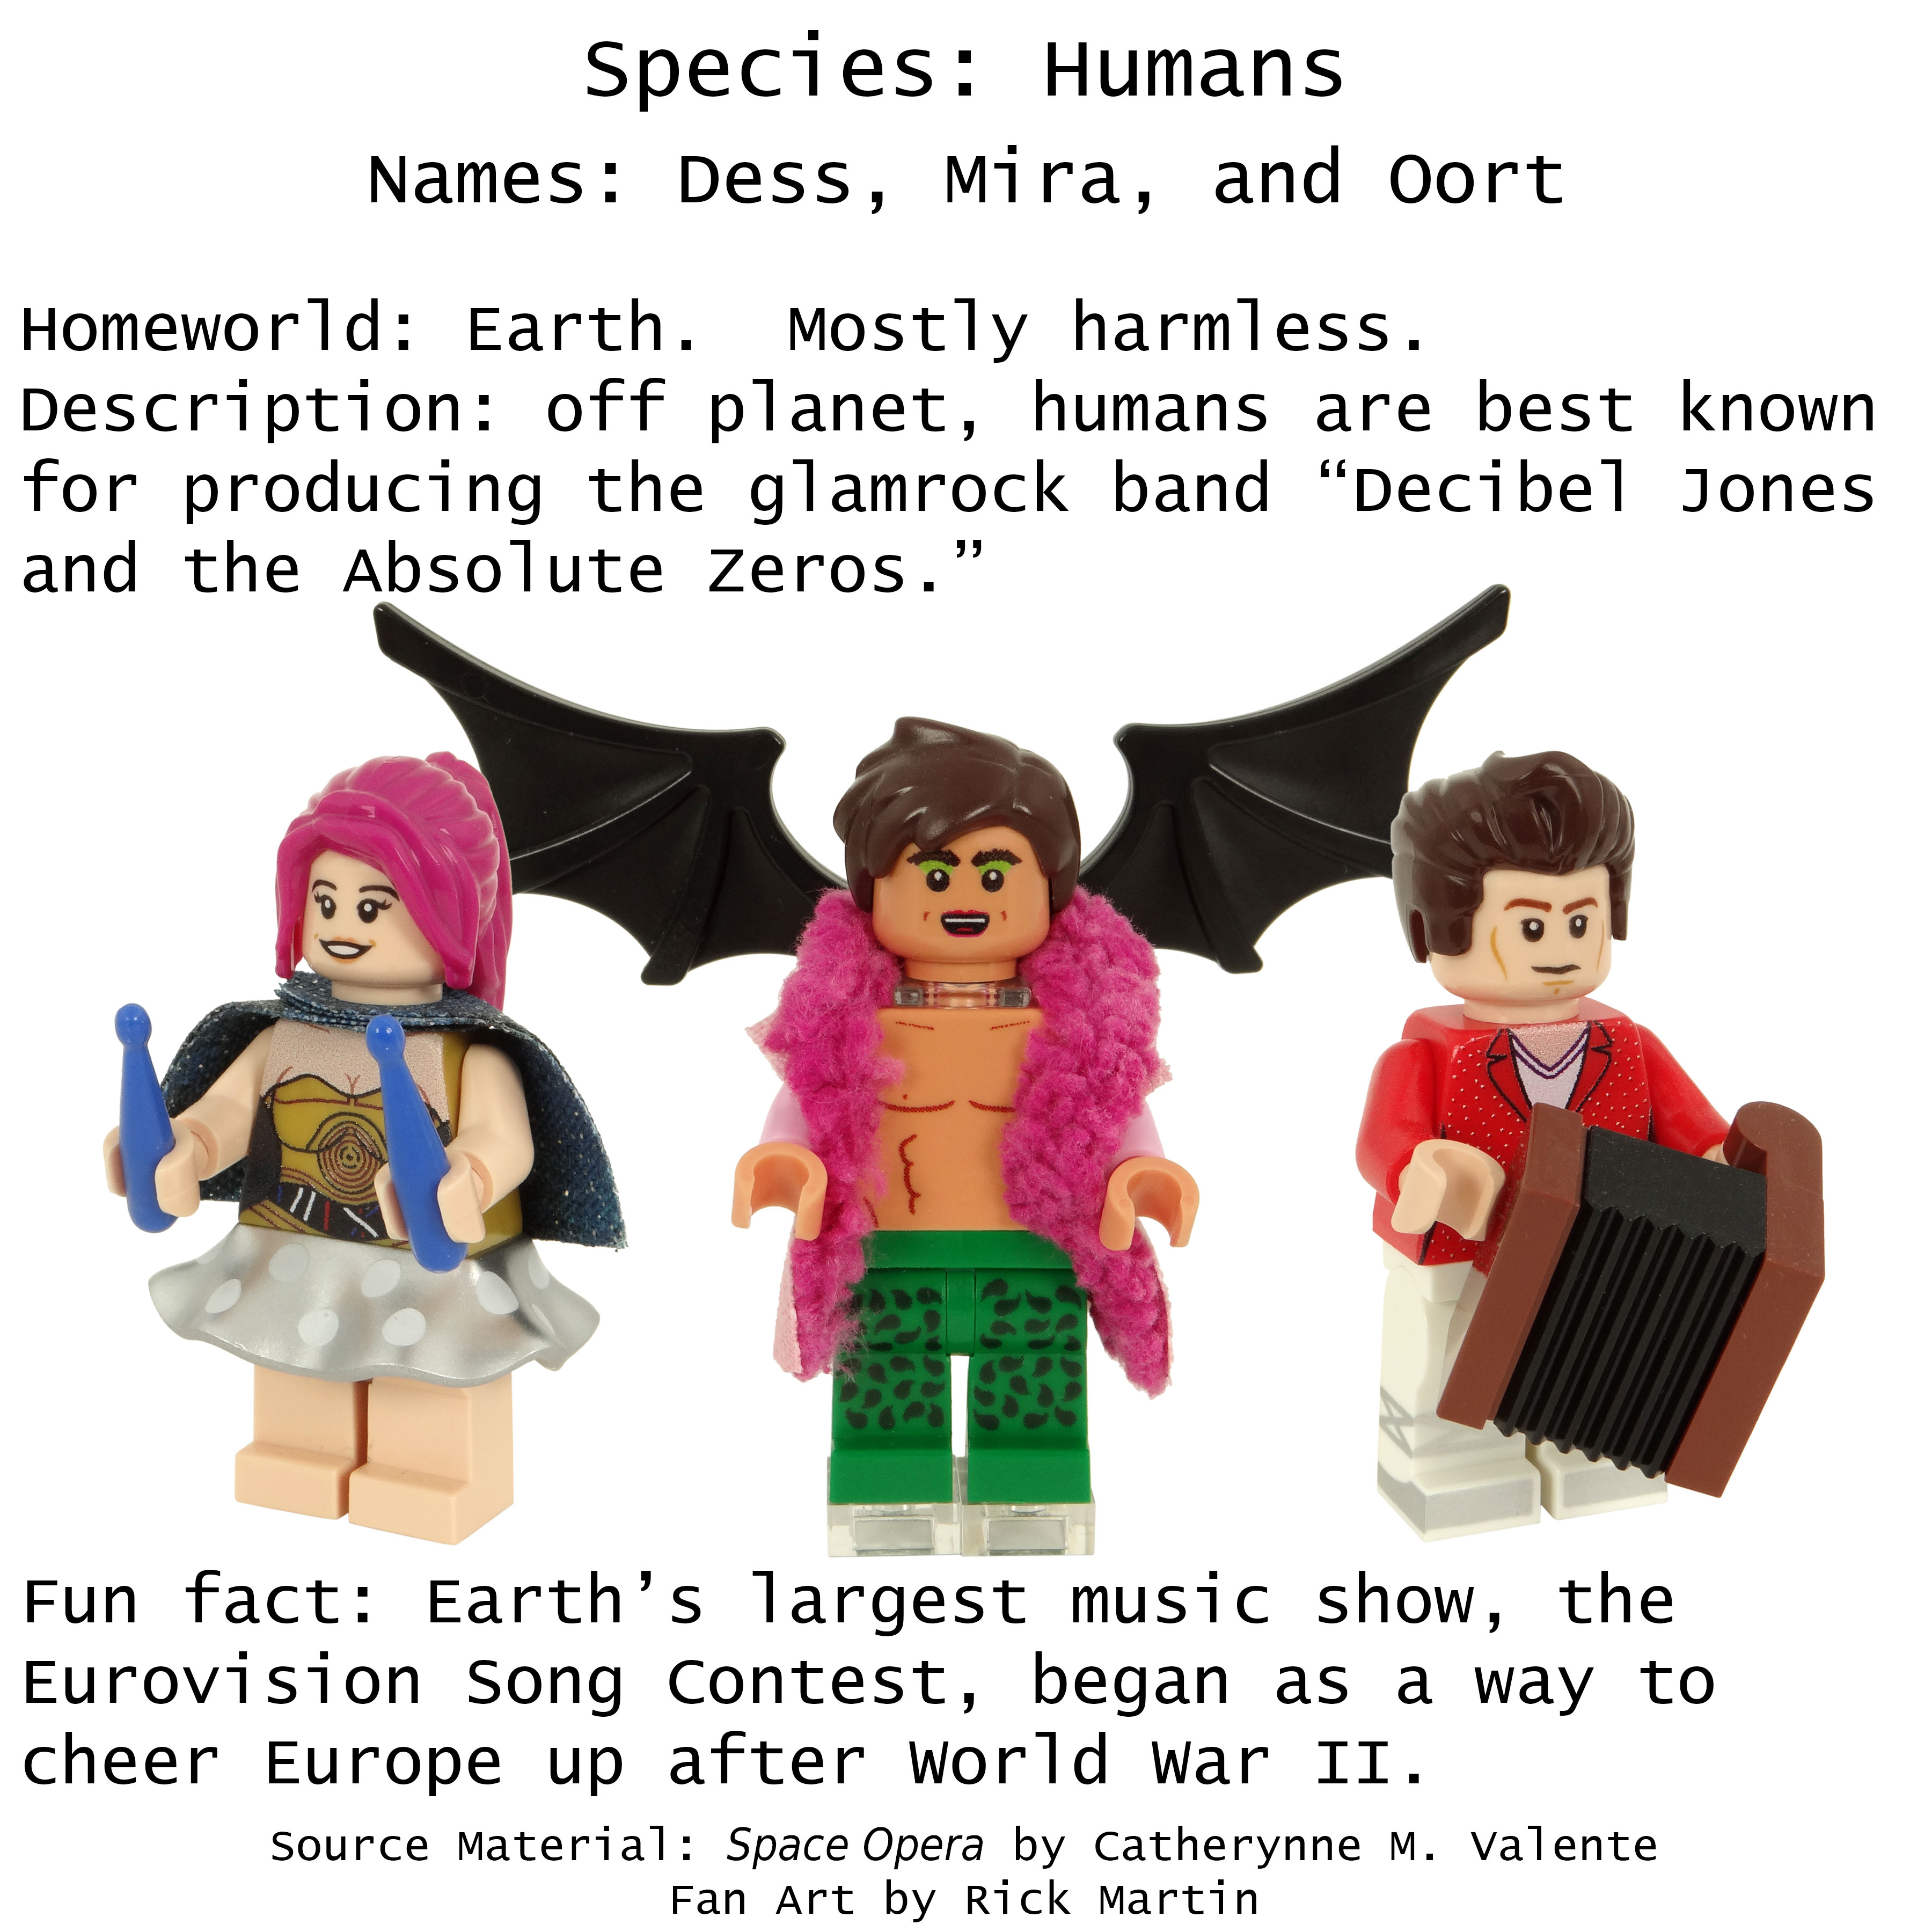 space-opera-humans